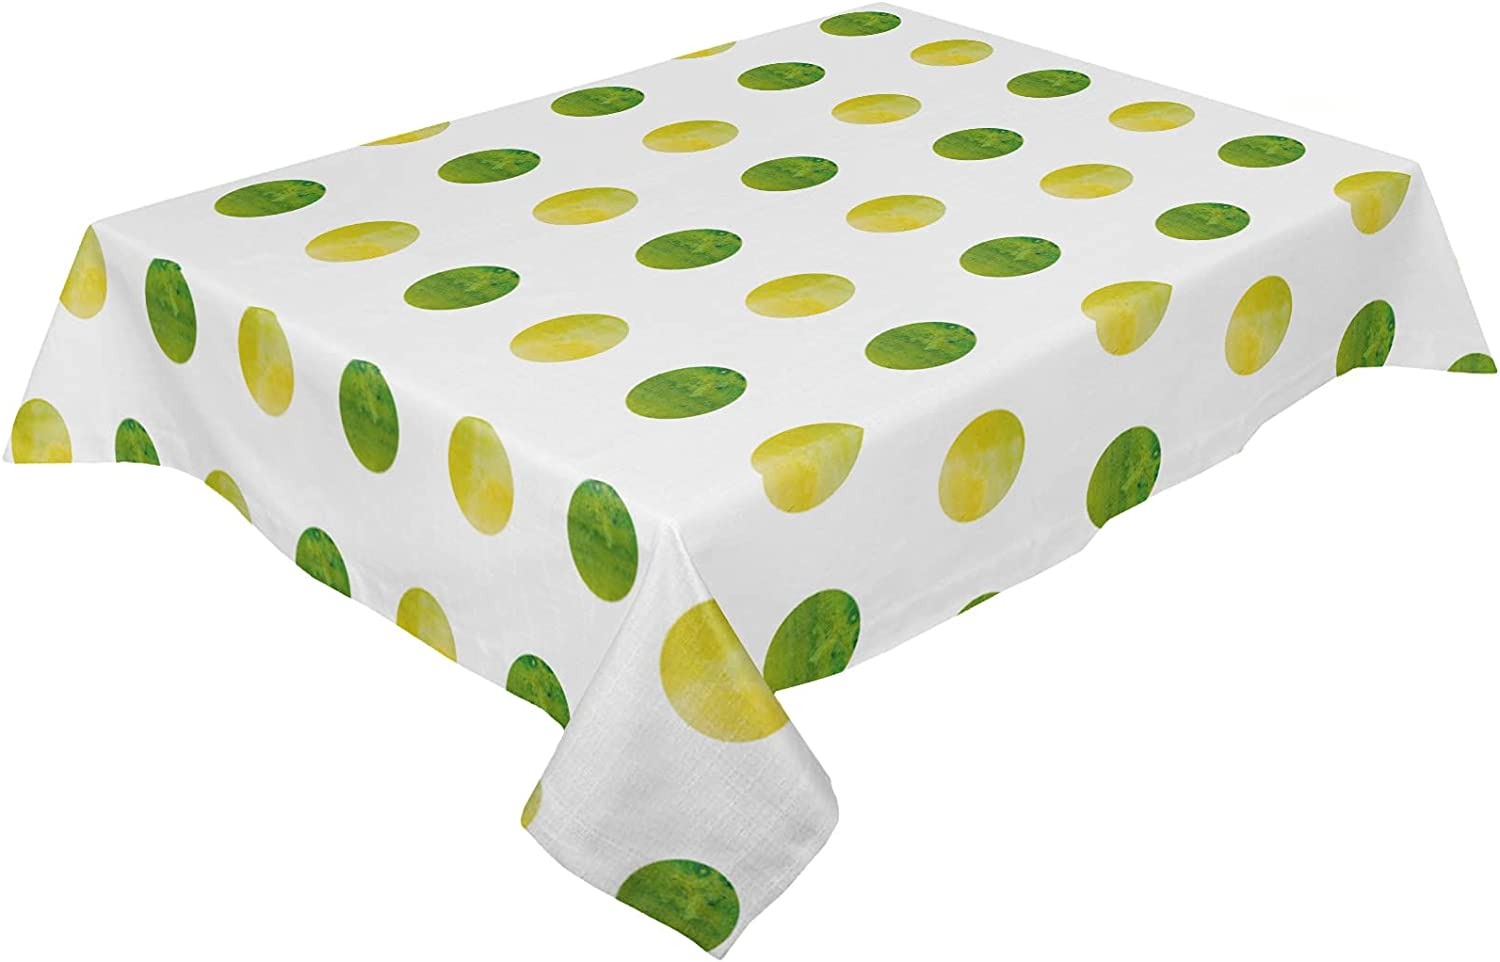 TweetyBed Cotton Linen Tablecloth Super beauty product restock quality top Watercolor Geometric Dot El Paso Mall Wrink